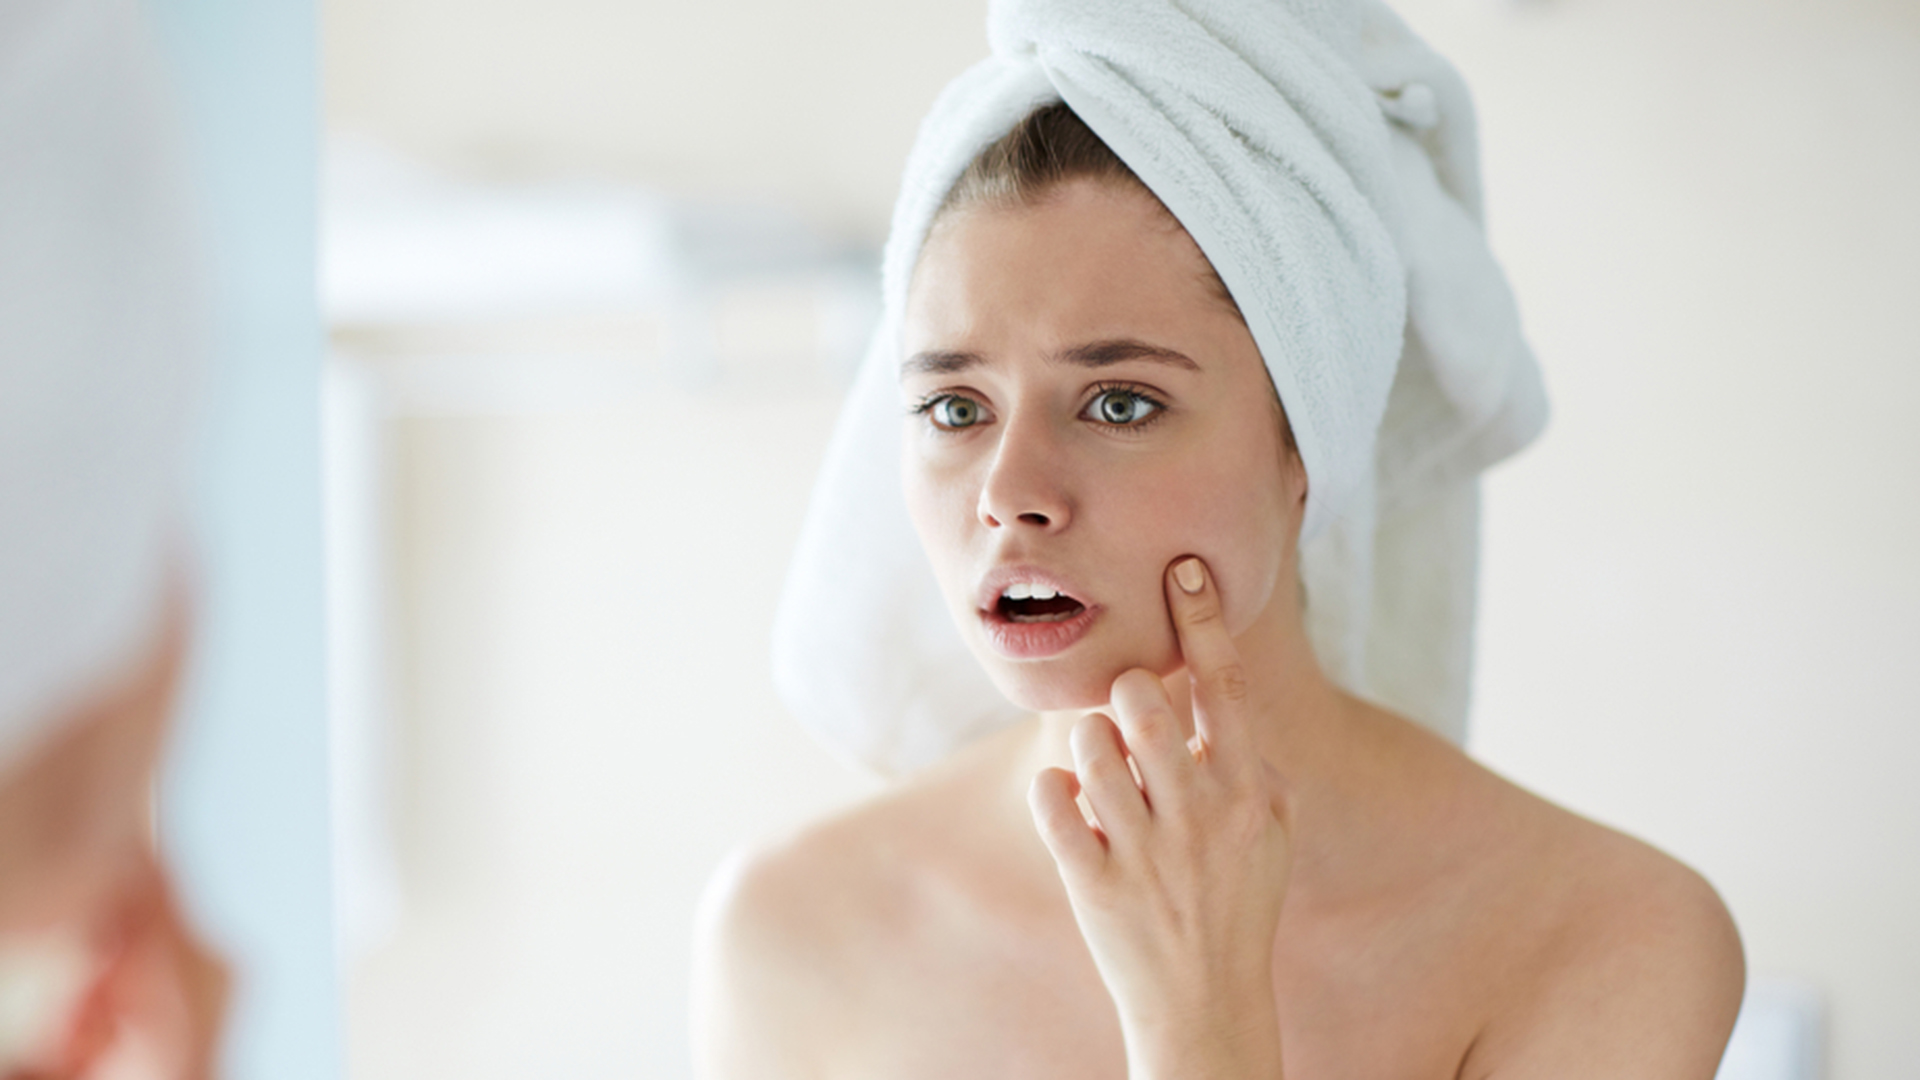 Pimples and blackheads: How to clear up skin blemishes